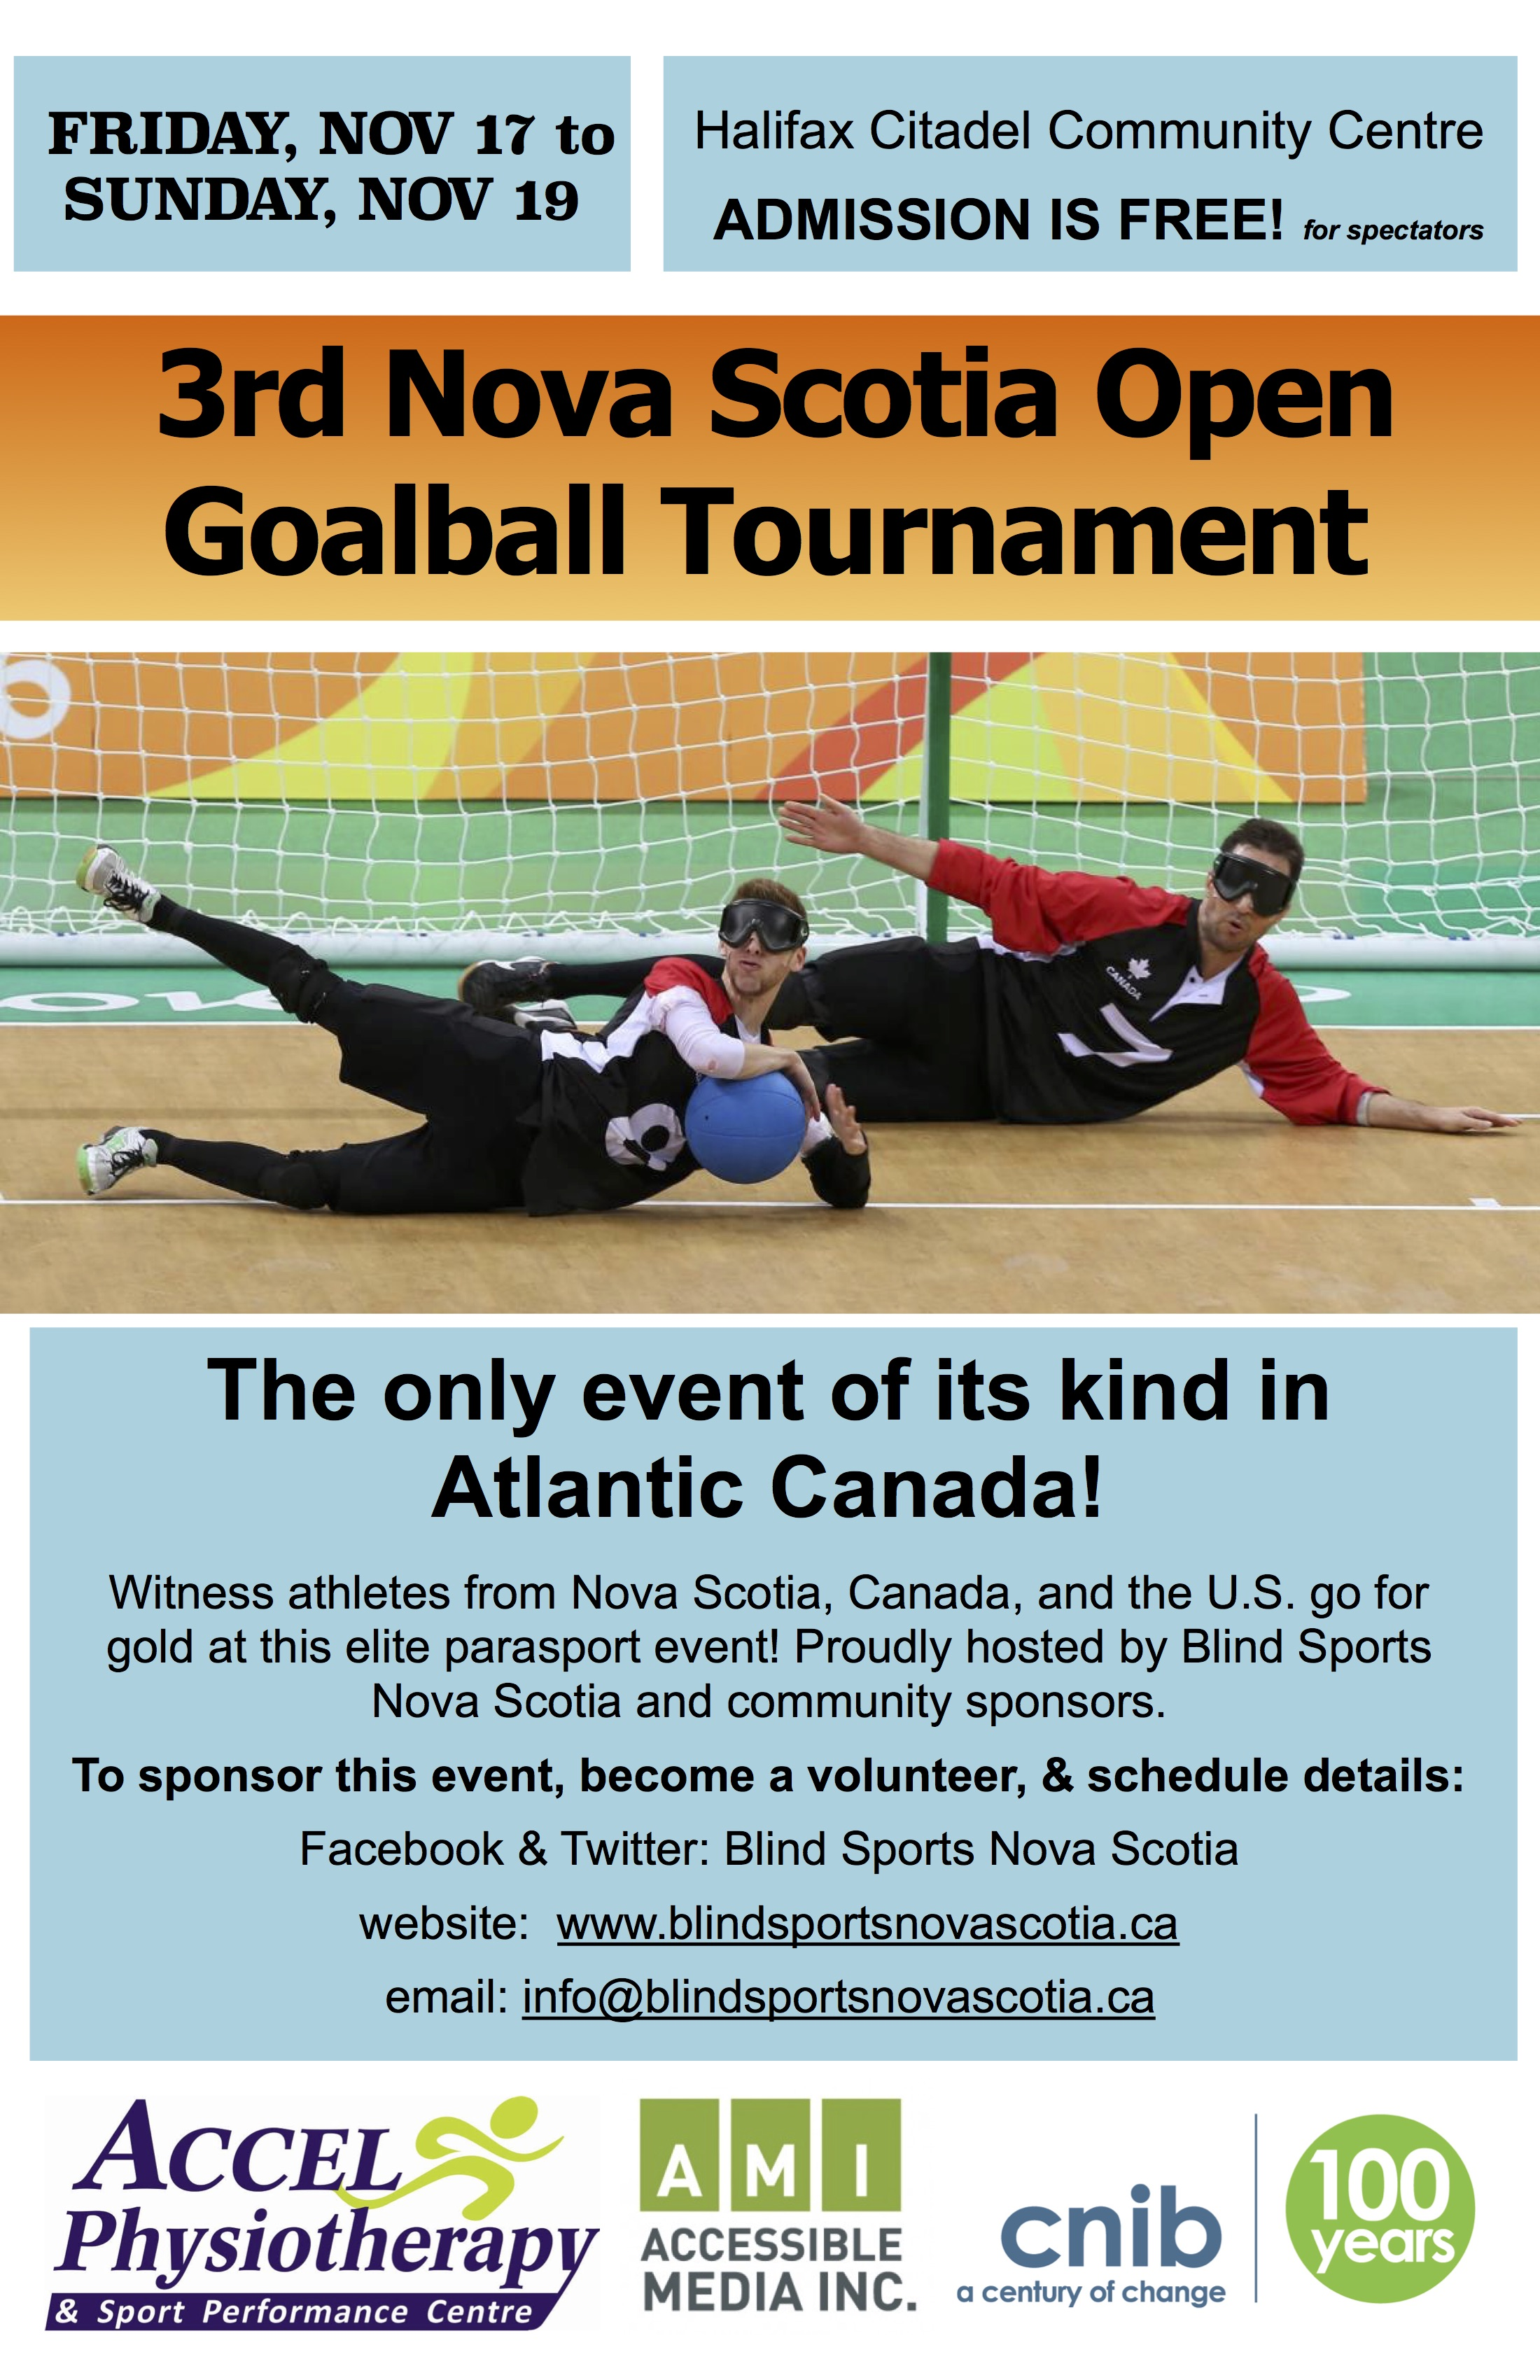 Event poster description: Friday Nov 17 to Sunday, Nov 19. Halifax Citadel Community Centre. Admission is free for spectators! 3rd Nova Scotia Open Goalball Tournament. The only event of its kind in Atlantic Canada! Witness athletes from Nova Scotia, Canada, and the U.S. go for gold at this elite parasport event! Proudly hosted by Blind Sports Nova Scotia and community sponsors. Proudly hosted by Blind Sports Nova Scotia and community sponsors. To sponsor this event or become a volunteer: Facebook & Twitter: Blind Sports Nova Scotia website: www.blindsportsnovascotia.ca email: info@blindsportsnovascotia.ca Sponsors & hosts logos: Accel Physiotherapy & Sport Performance Centre; CNIB; Accessible Media Inc